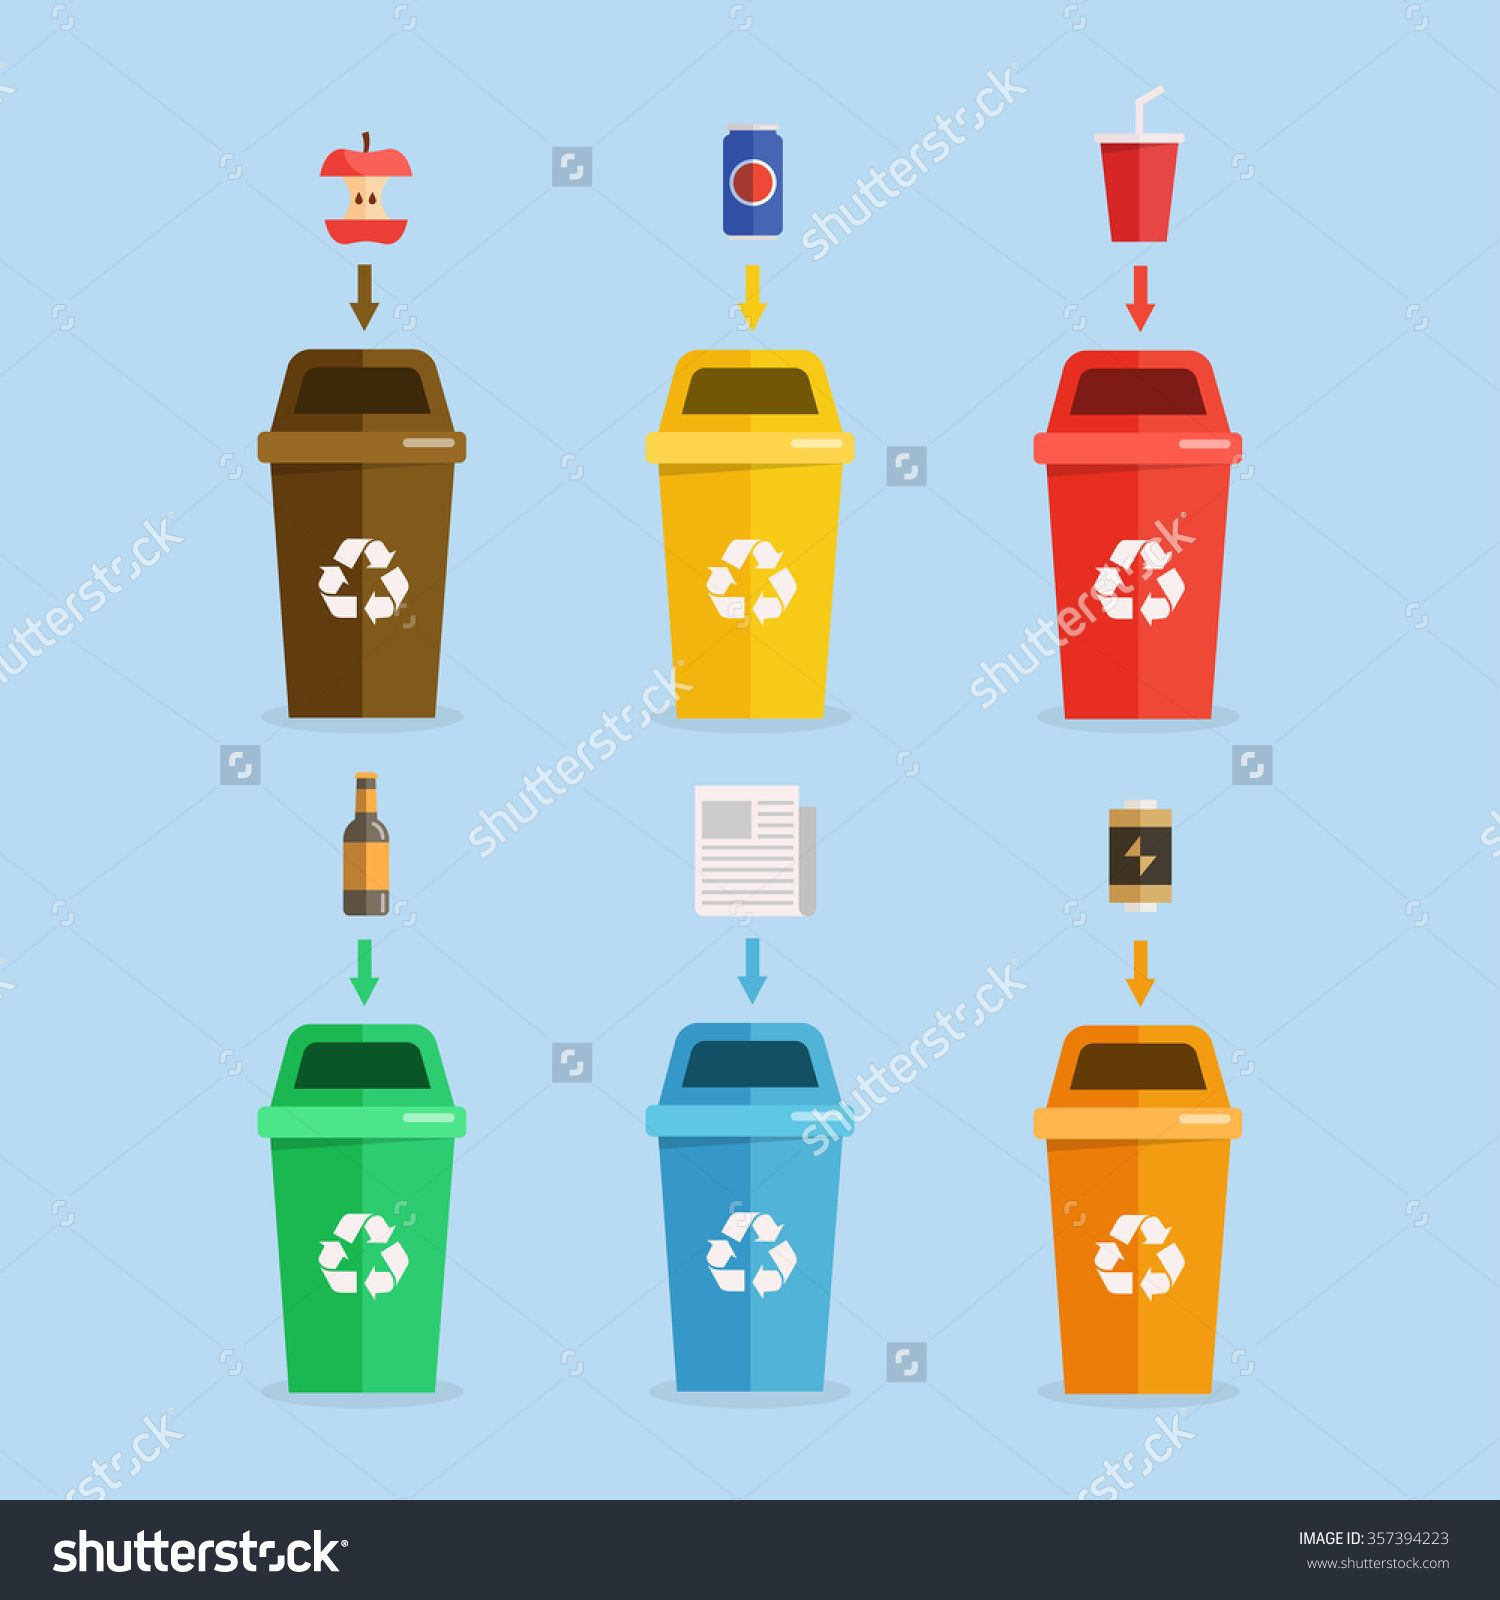 Colorful Garbage Cans Waste Management Concept Illustration Waste Segregation